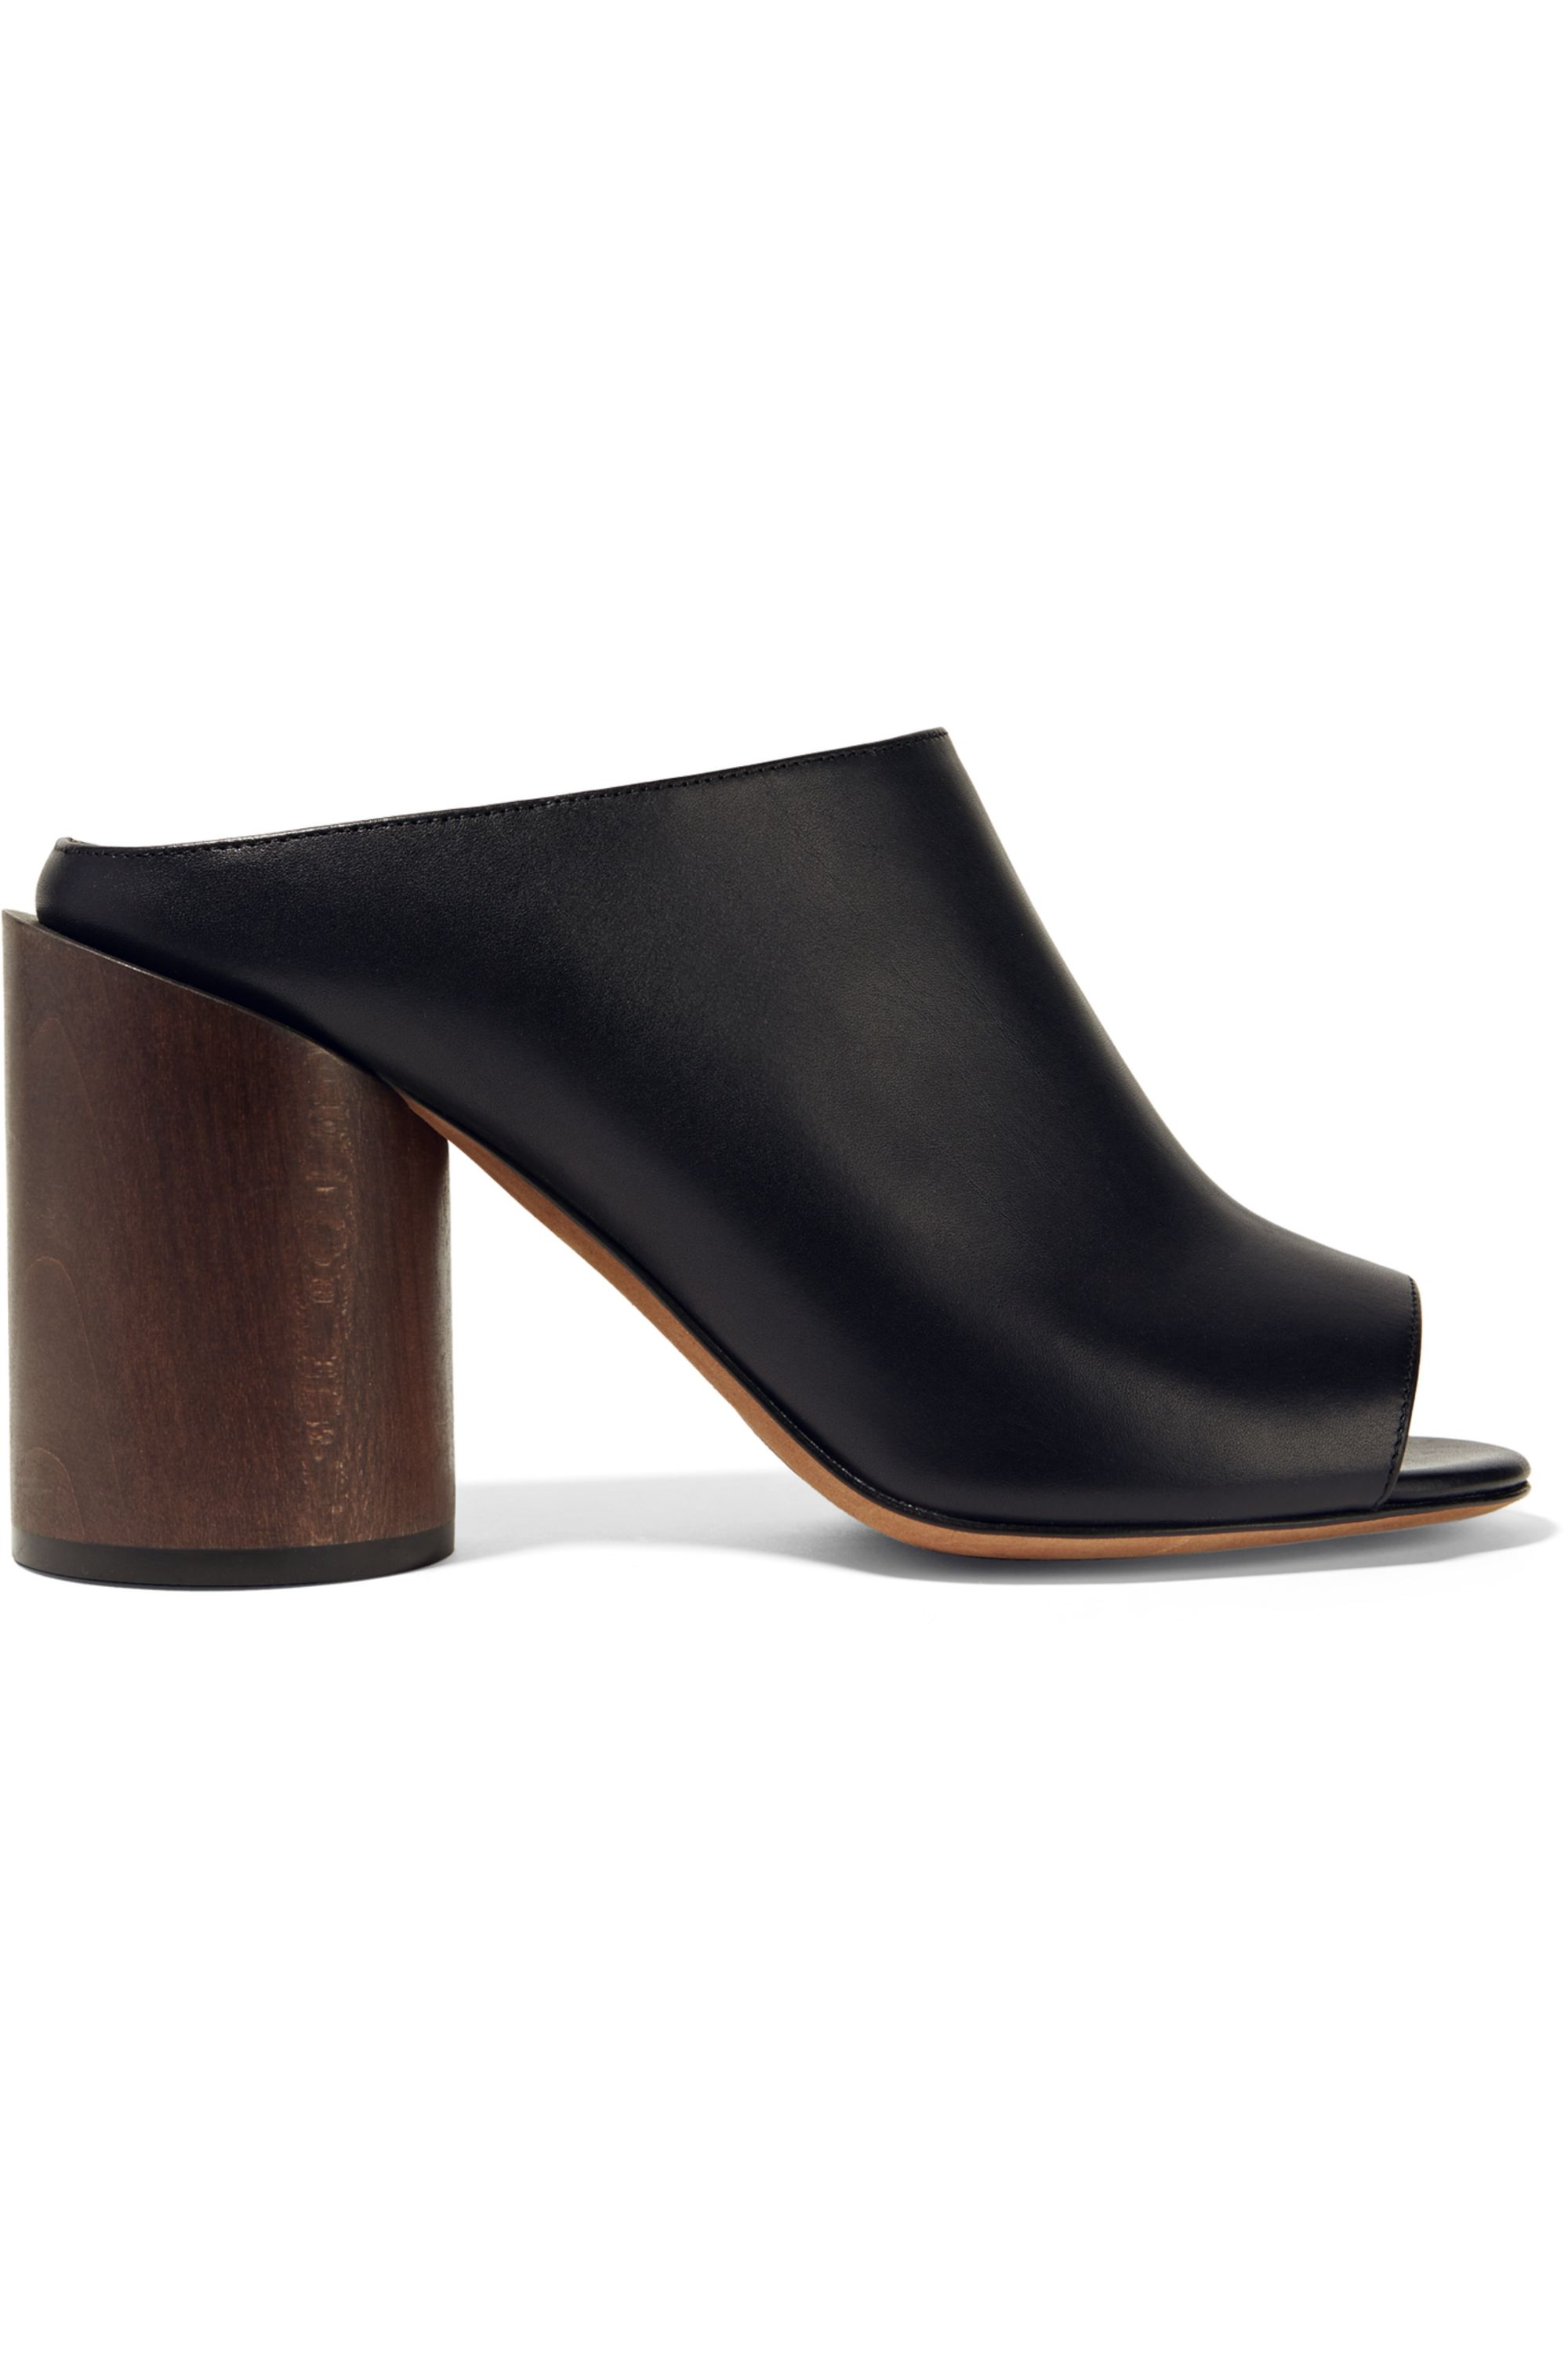 Givenchy Ramia leather mules